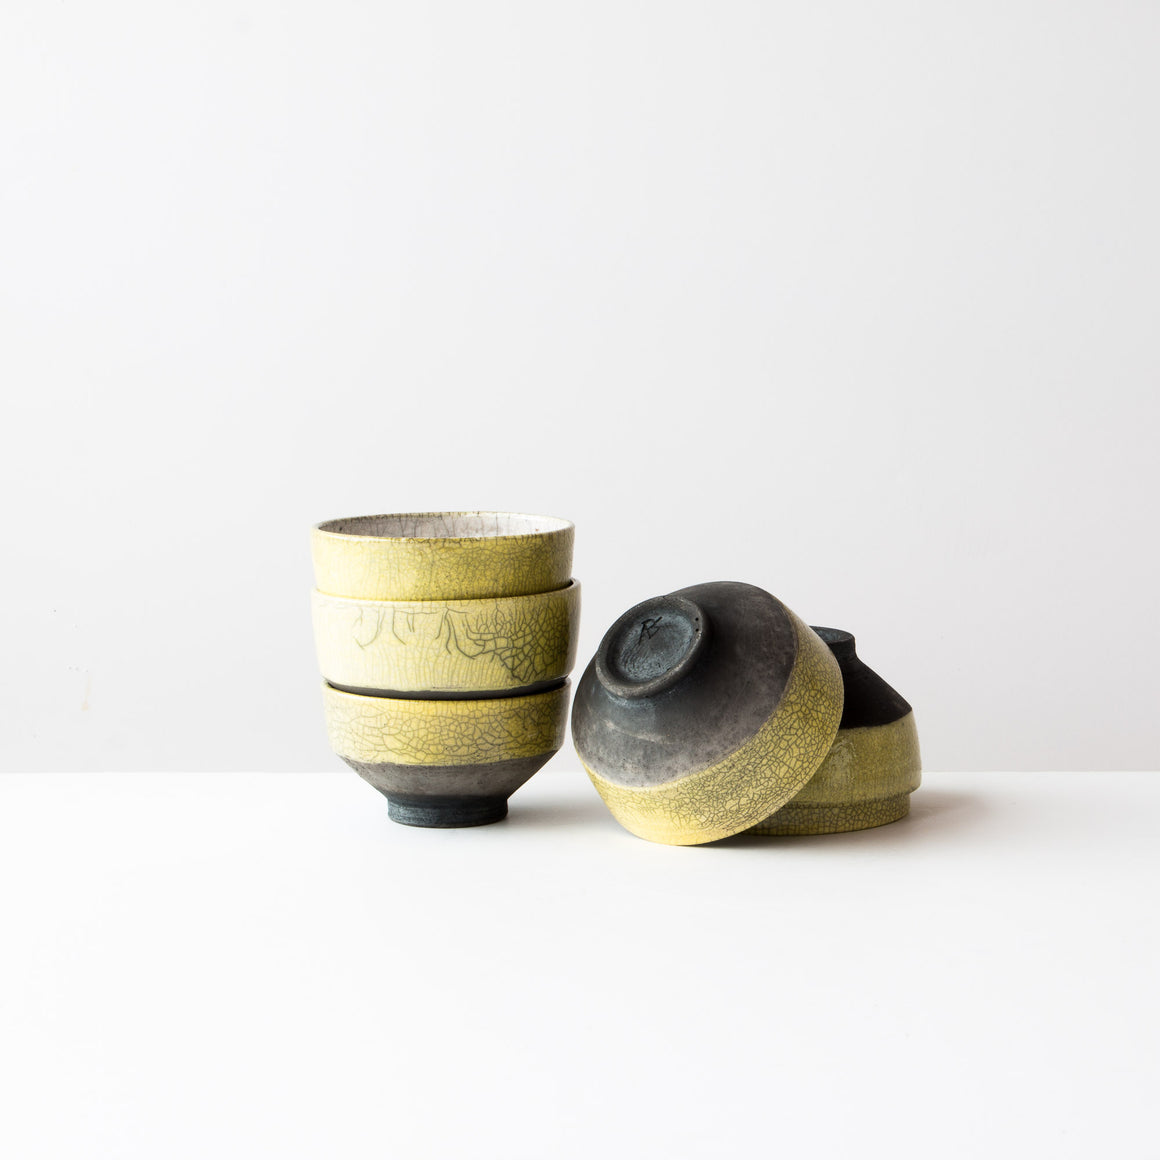 Four Handmade Yellow Raku Ceramics Tea Bowls - Chawan Tea Bowls - Sold by Chic & Basta